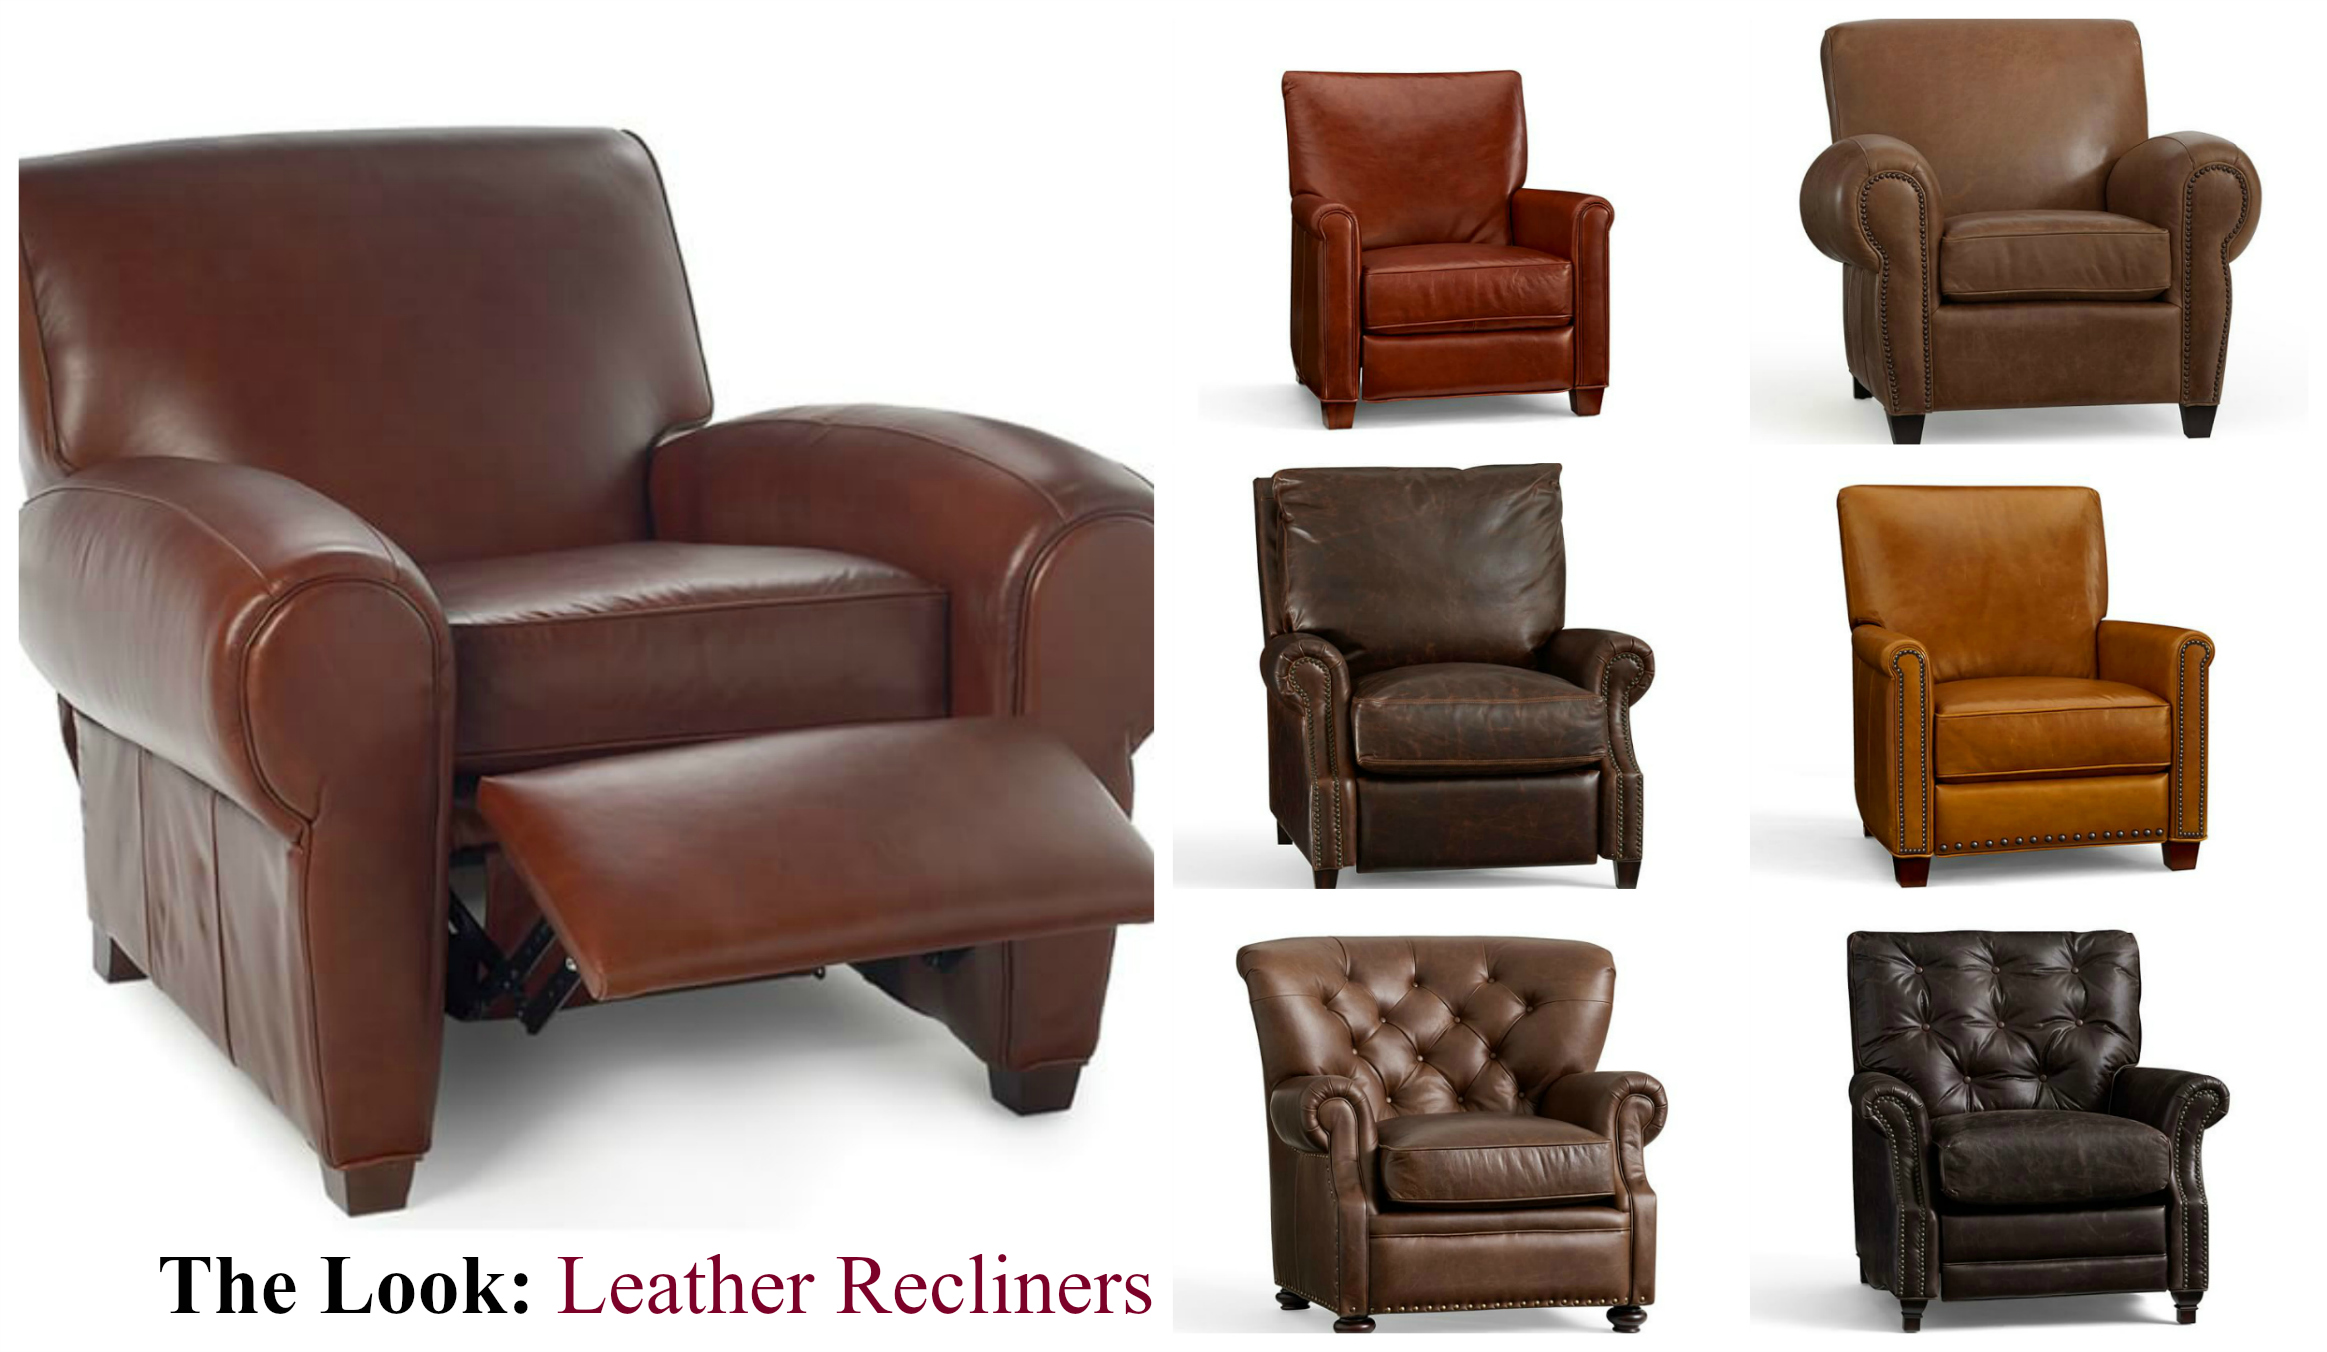 5 Simple Tips For Decorating With Leather Recliners To Fit ...